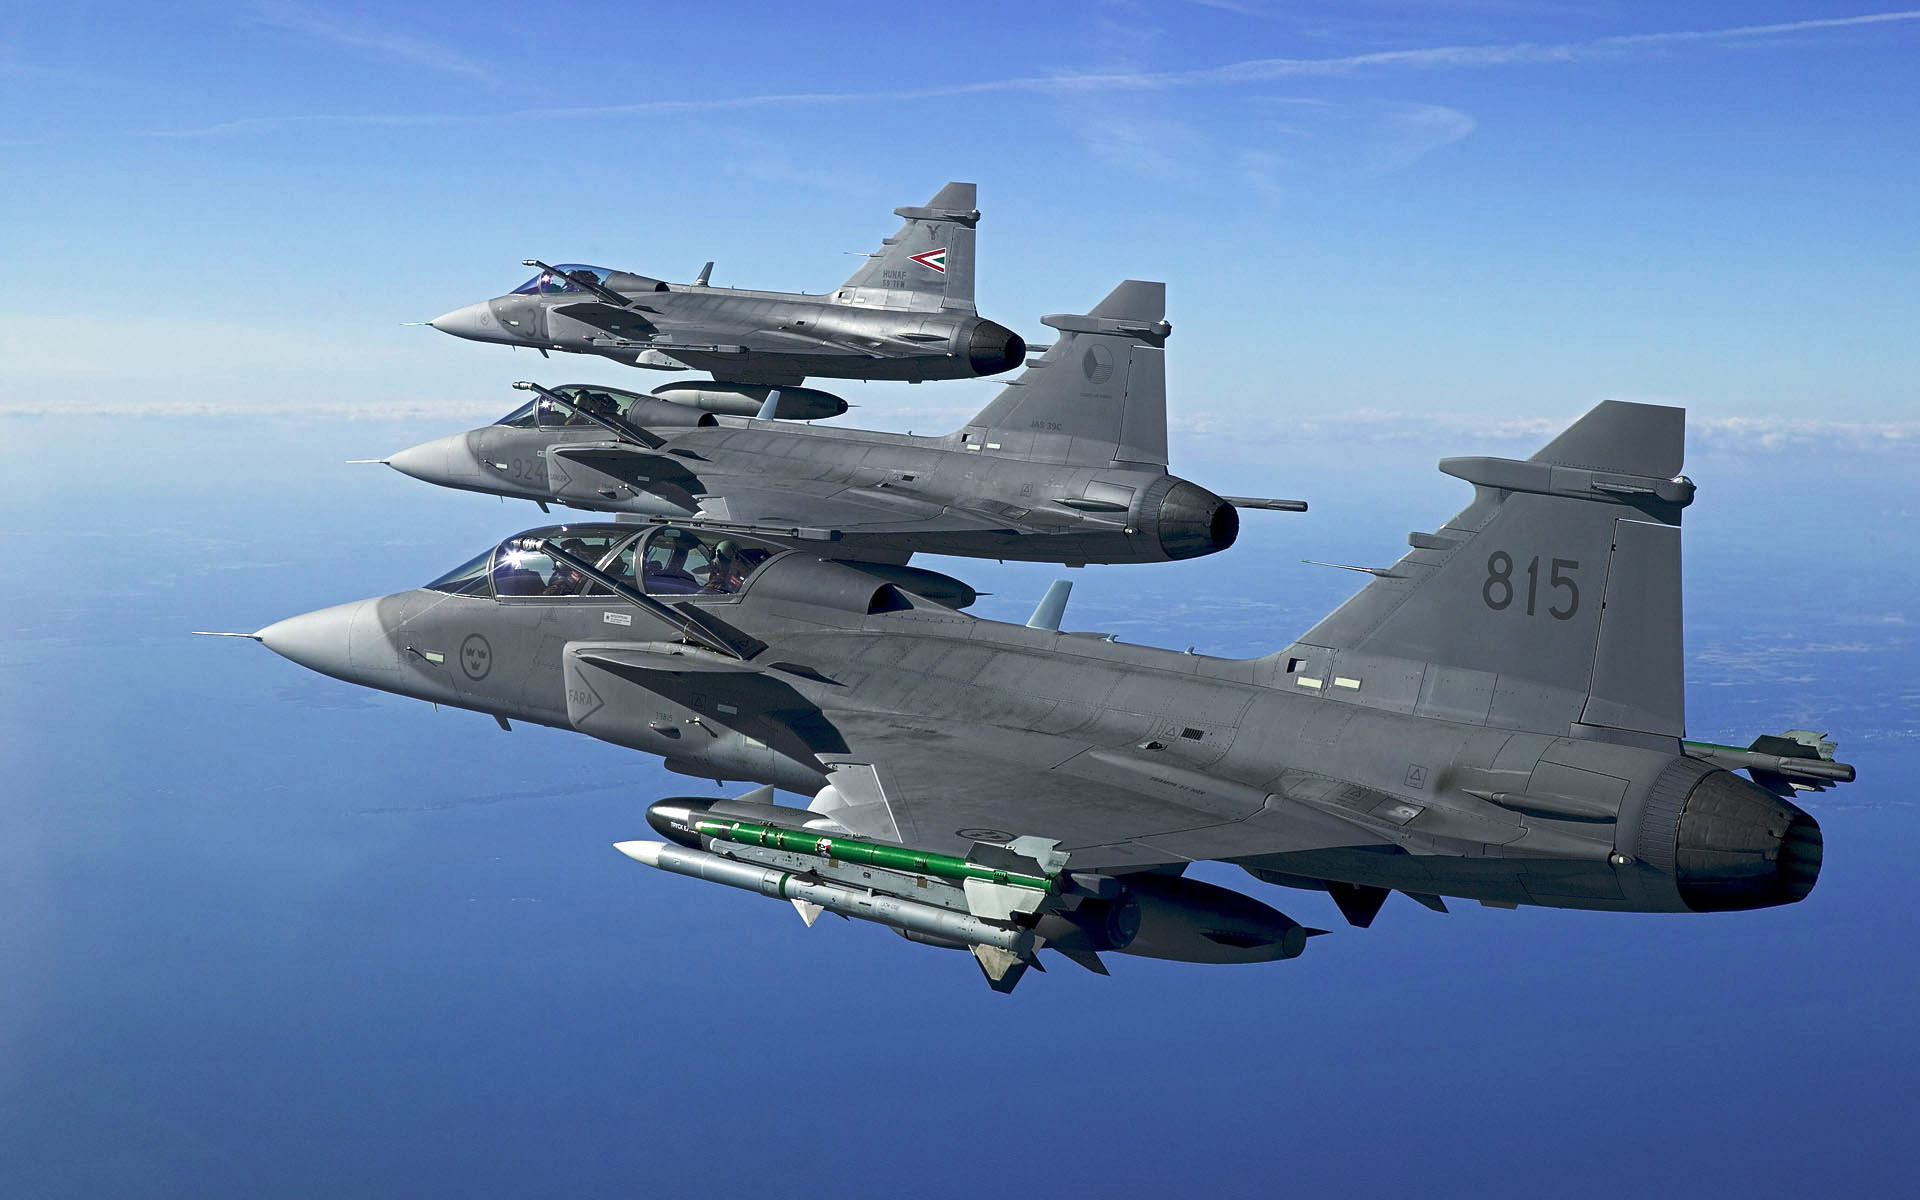 Fighter Jets Widescreen Wallpapers HD Wallpapers 1920x1200